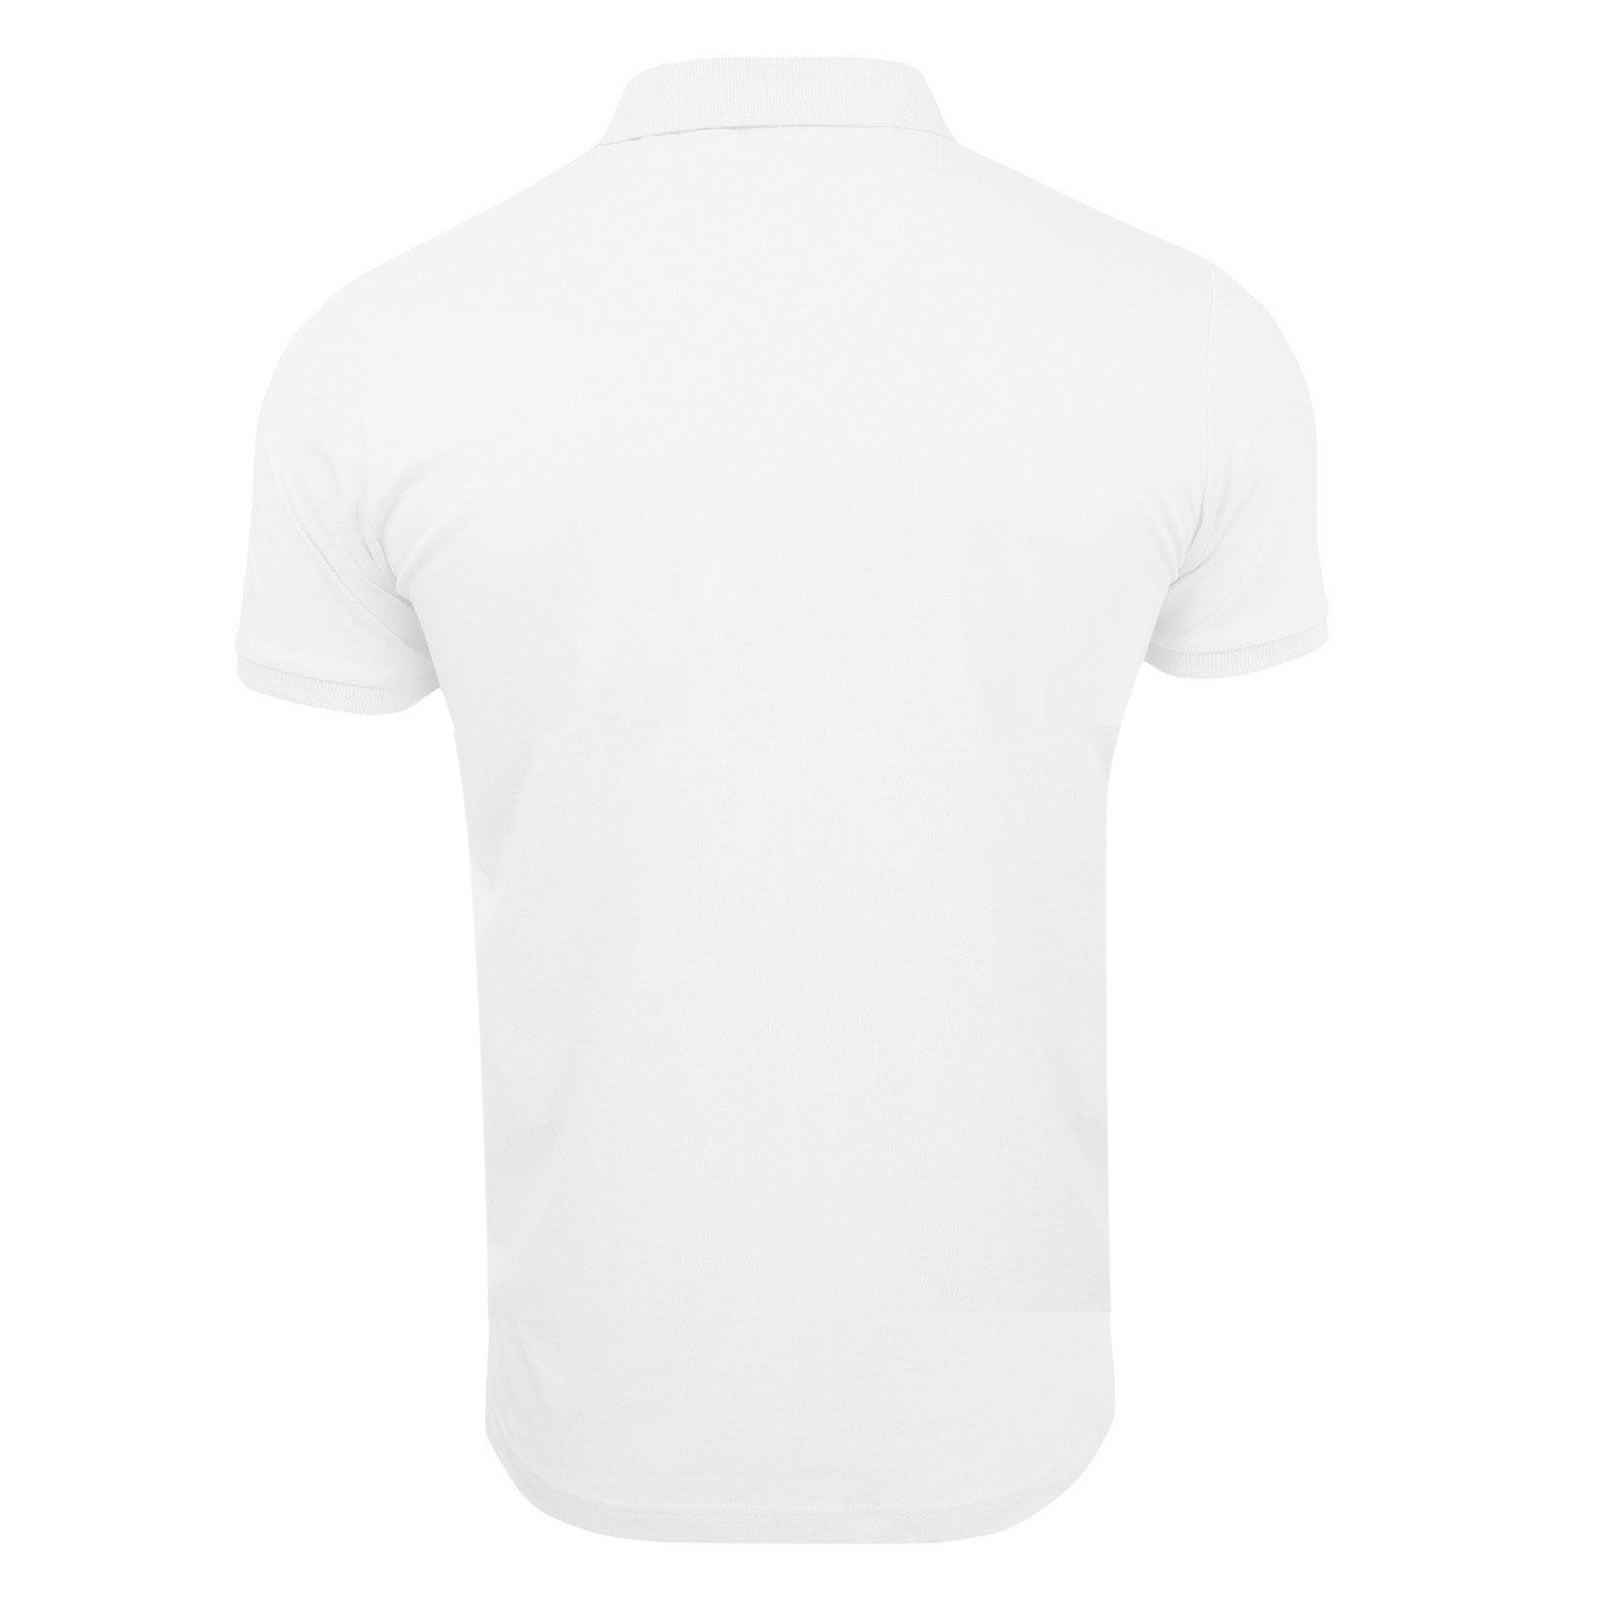 Mens-Polo-T-Shirt-Brave-Soul-Glover-Cotton-Collared-Short-Sleeve-Casual-Top thumbnail 94